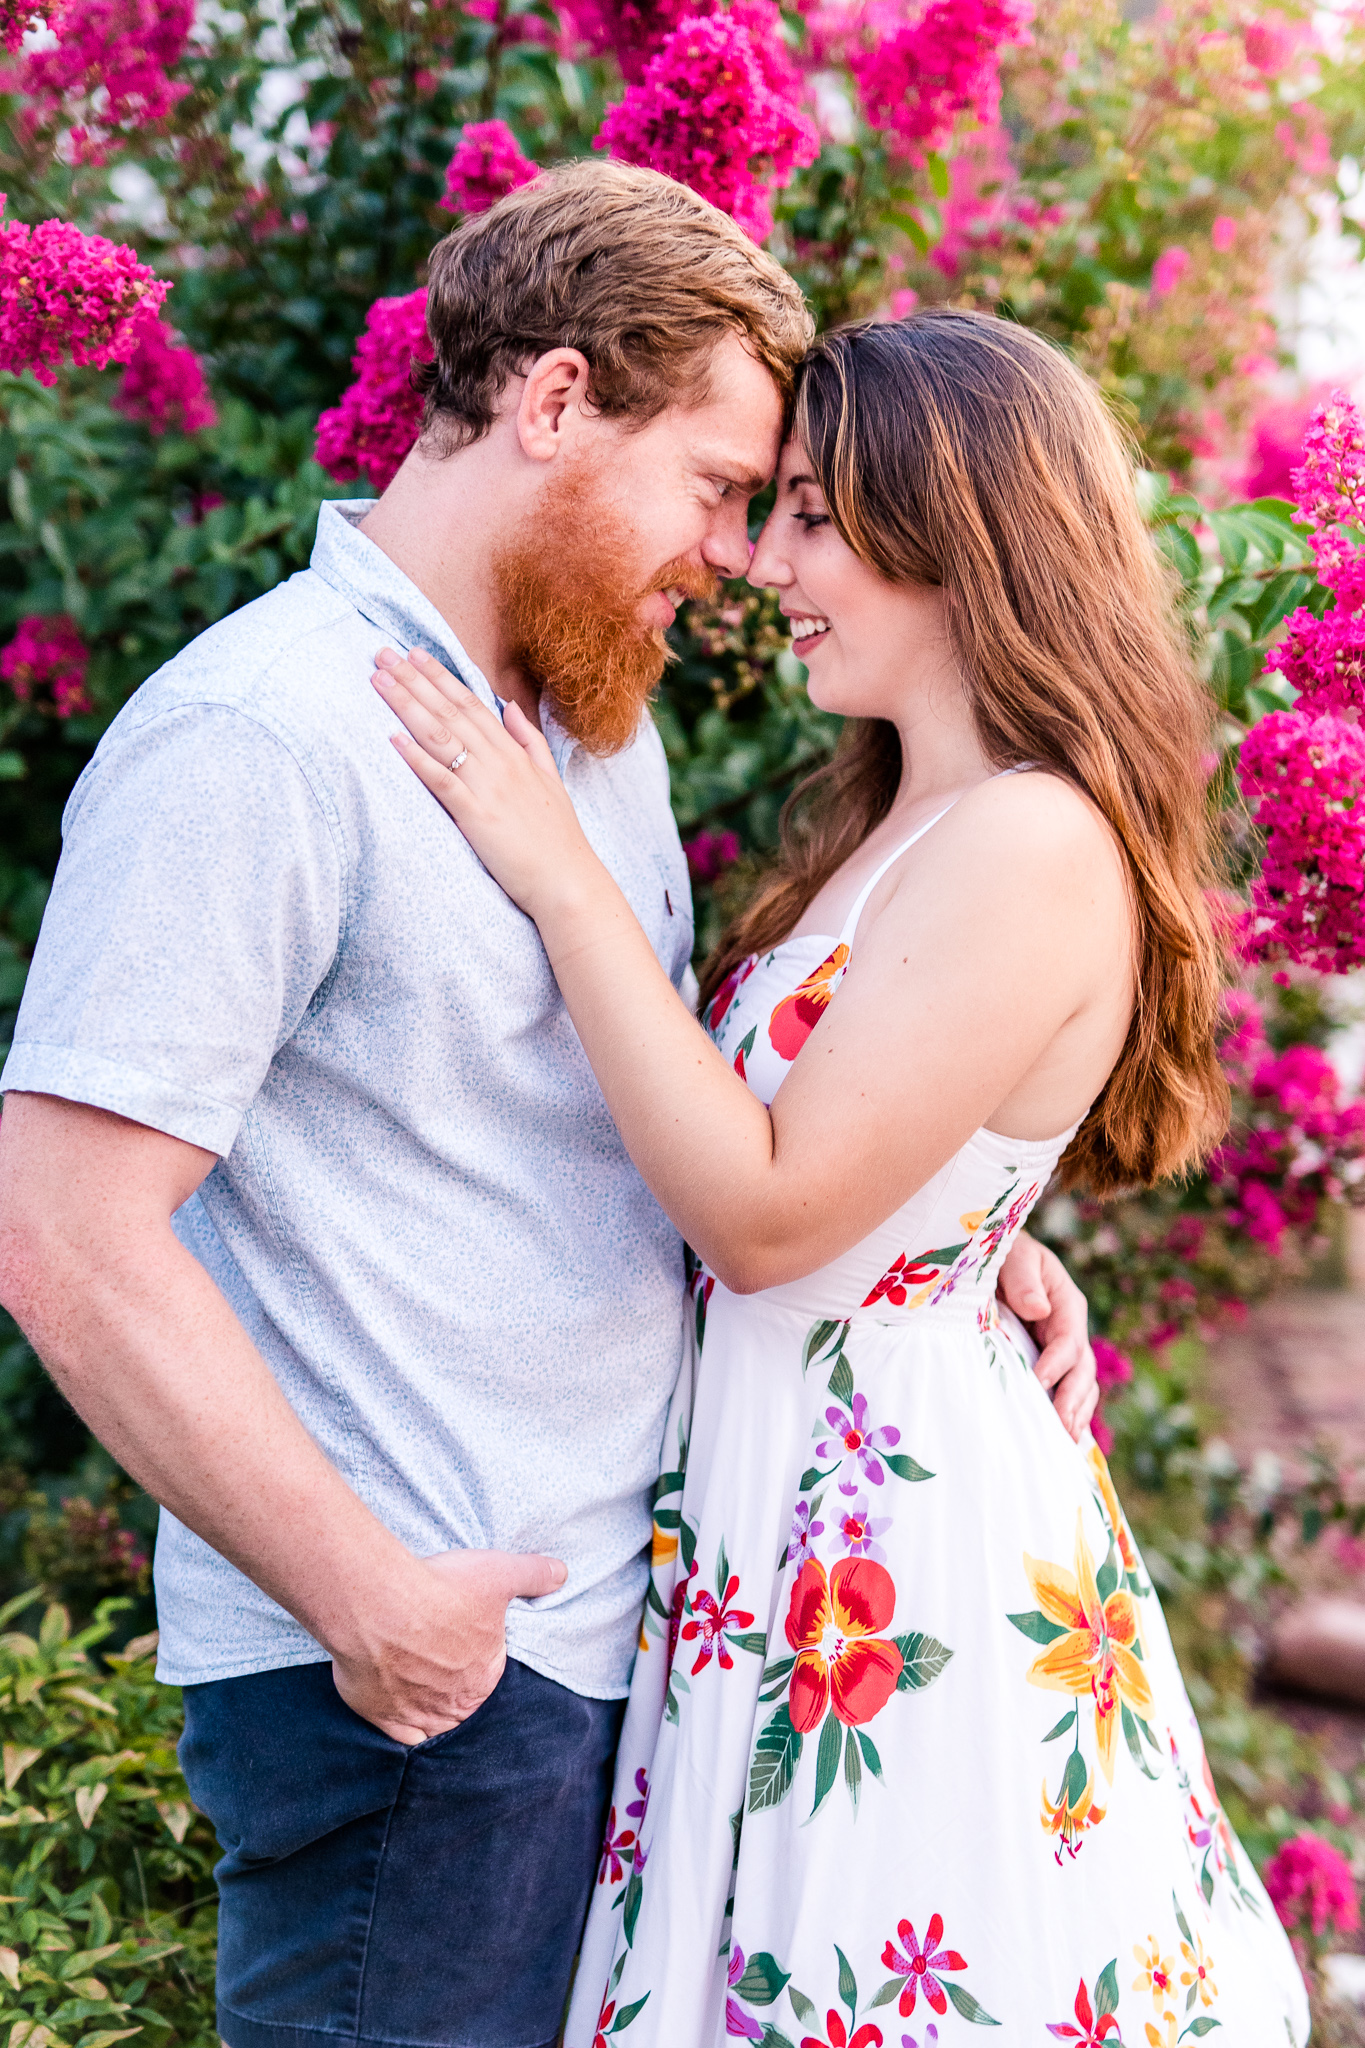 An engaged couple smile with their foreheads pressed together in front of a pink flowering tree during their summer sunset engagement session in Historic Occoquan, Northern Virginia